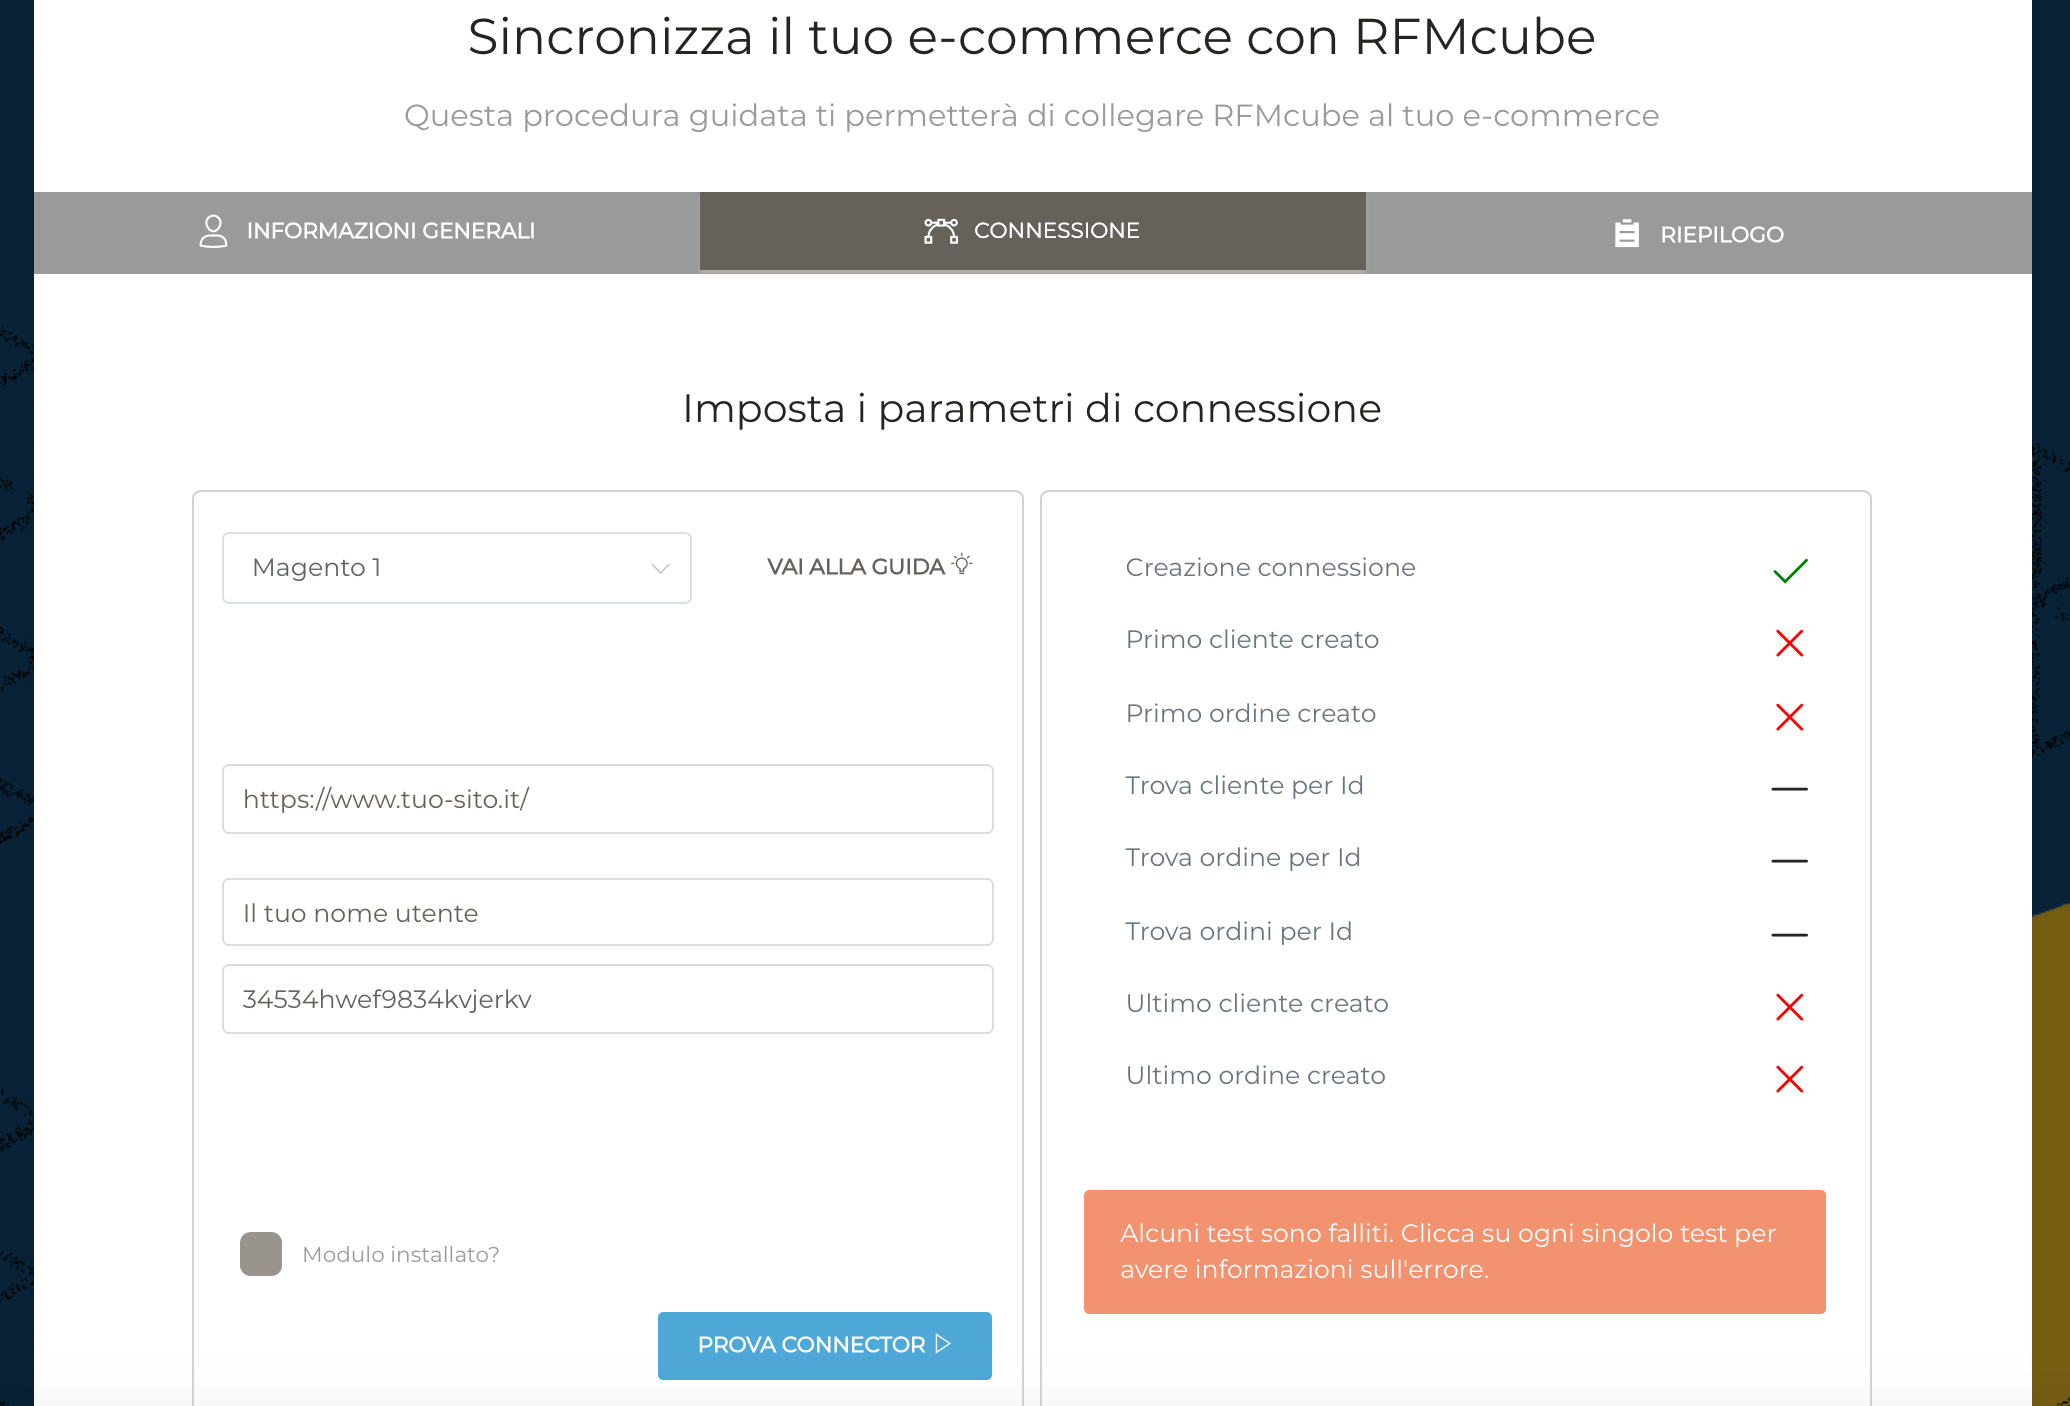 rfmcube ecommerce integration one click